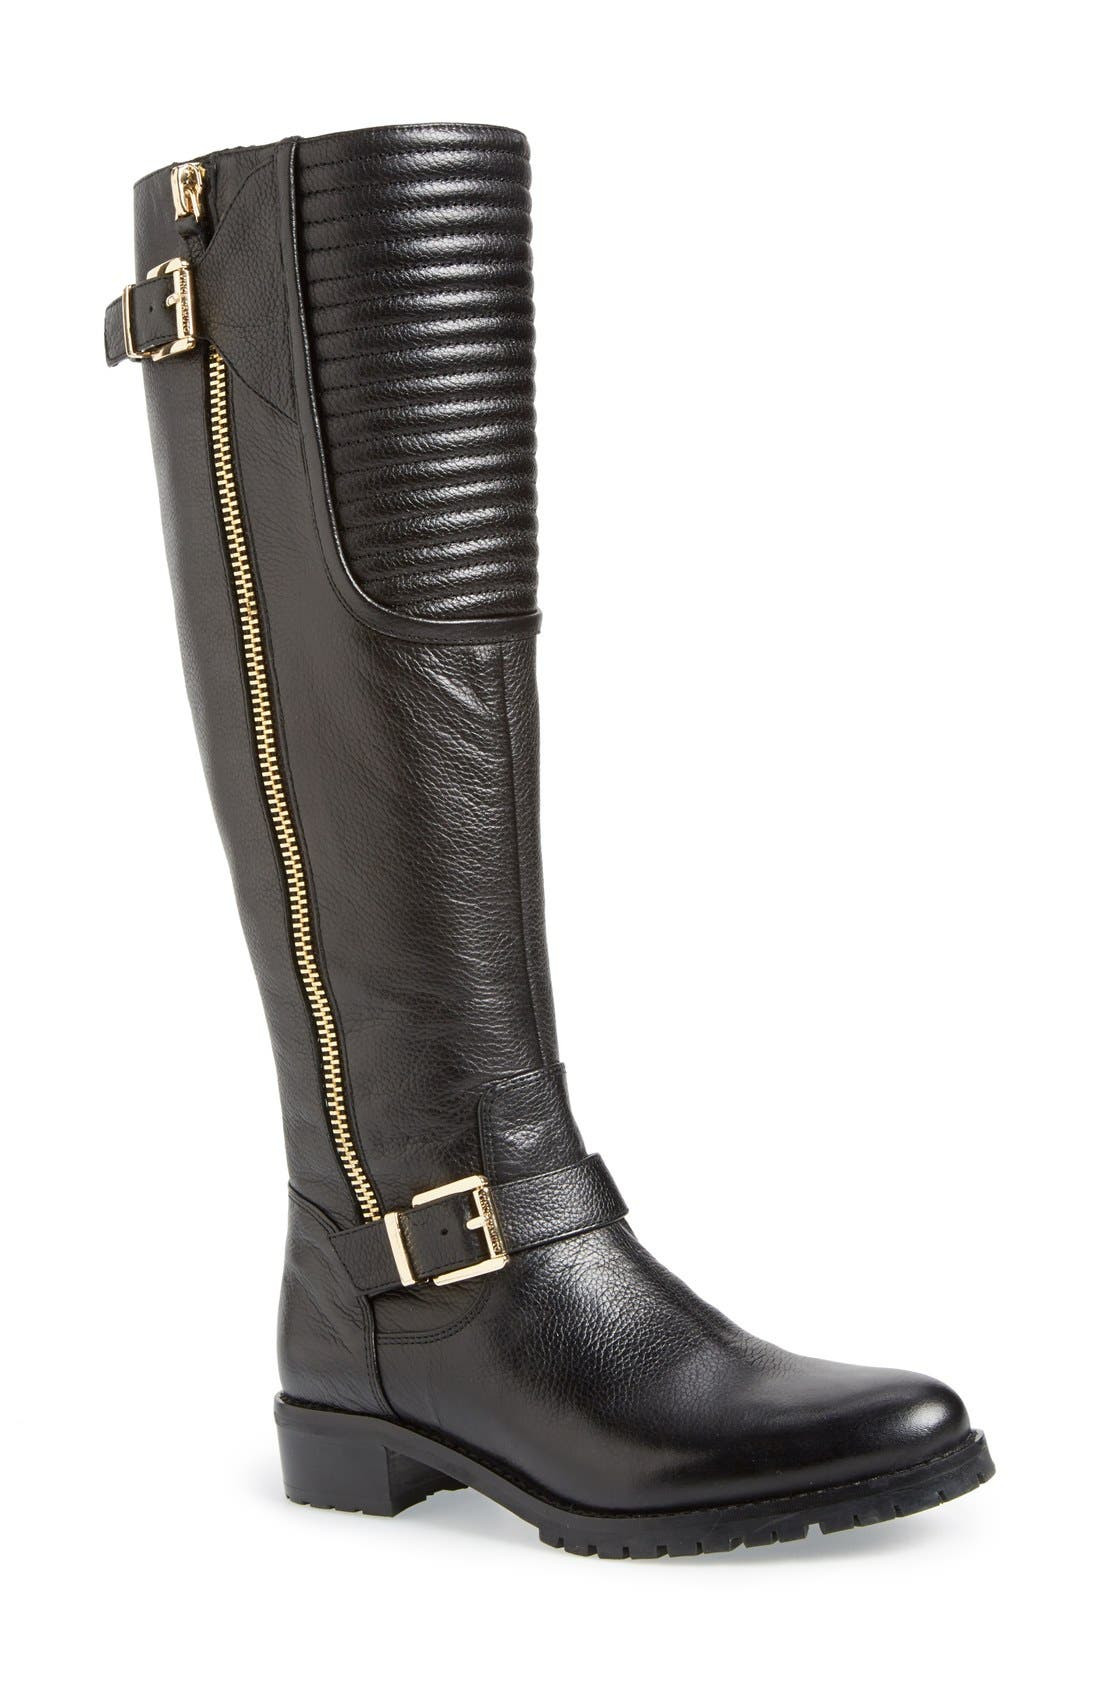 Main Image - Vince Camuto 'Jamina' Riding Boot (Women)